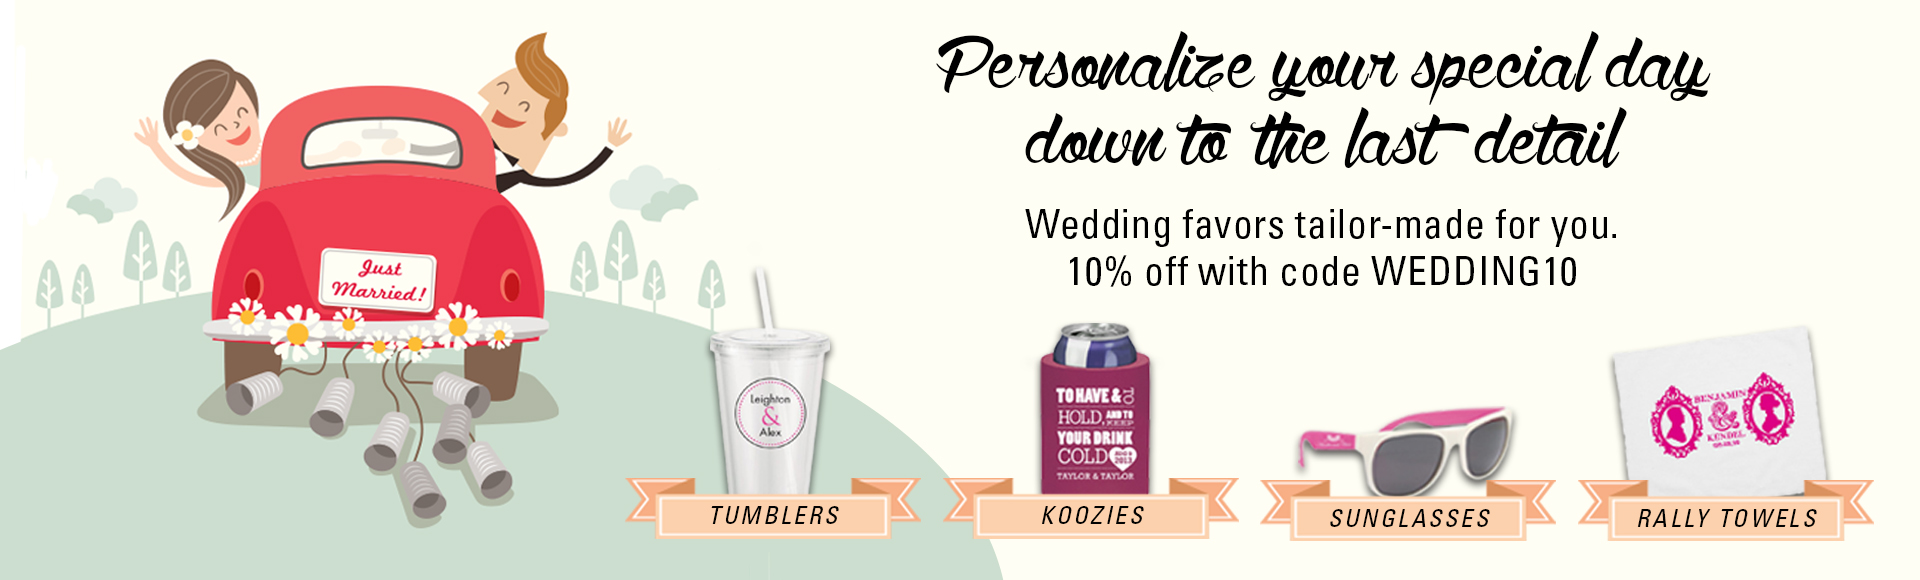 Post wedding promotional gifts